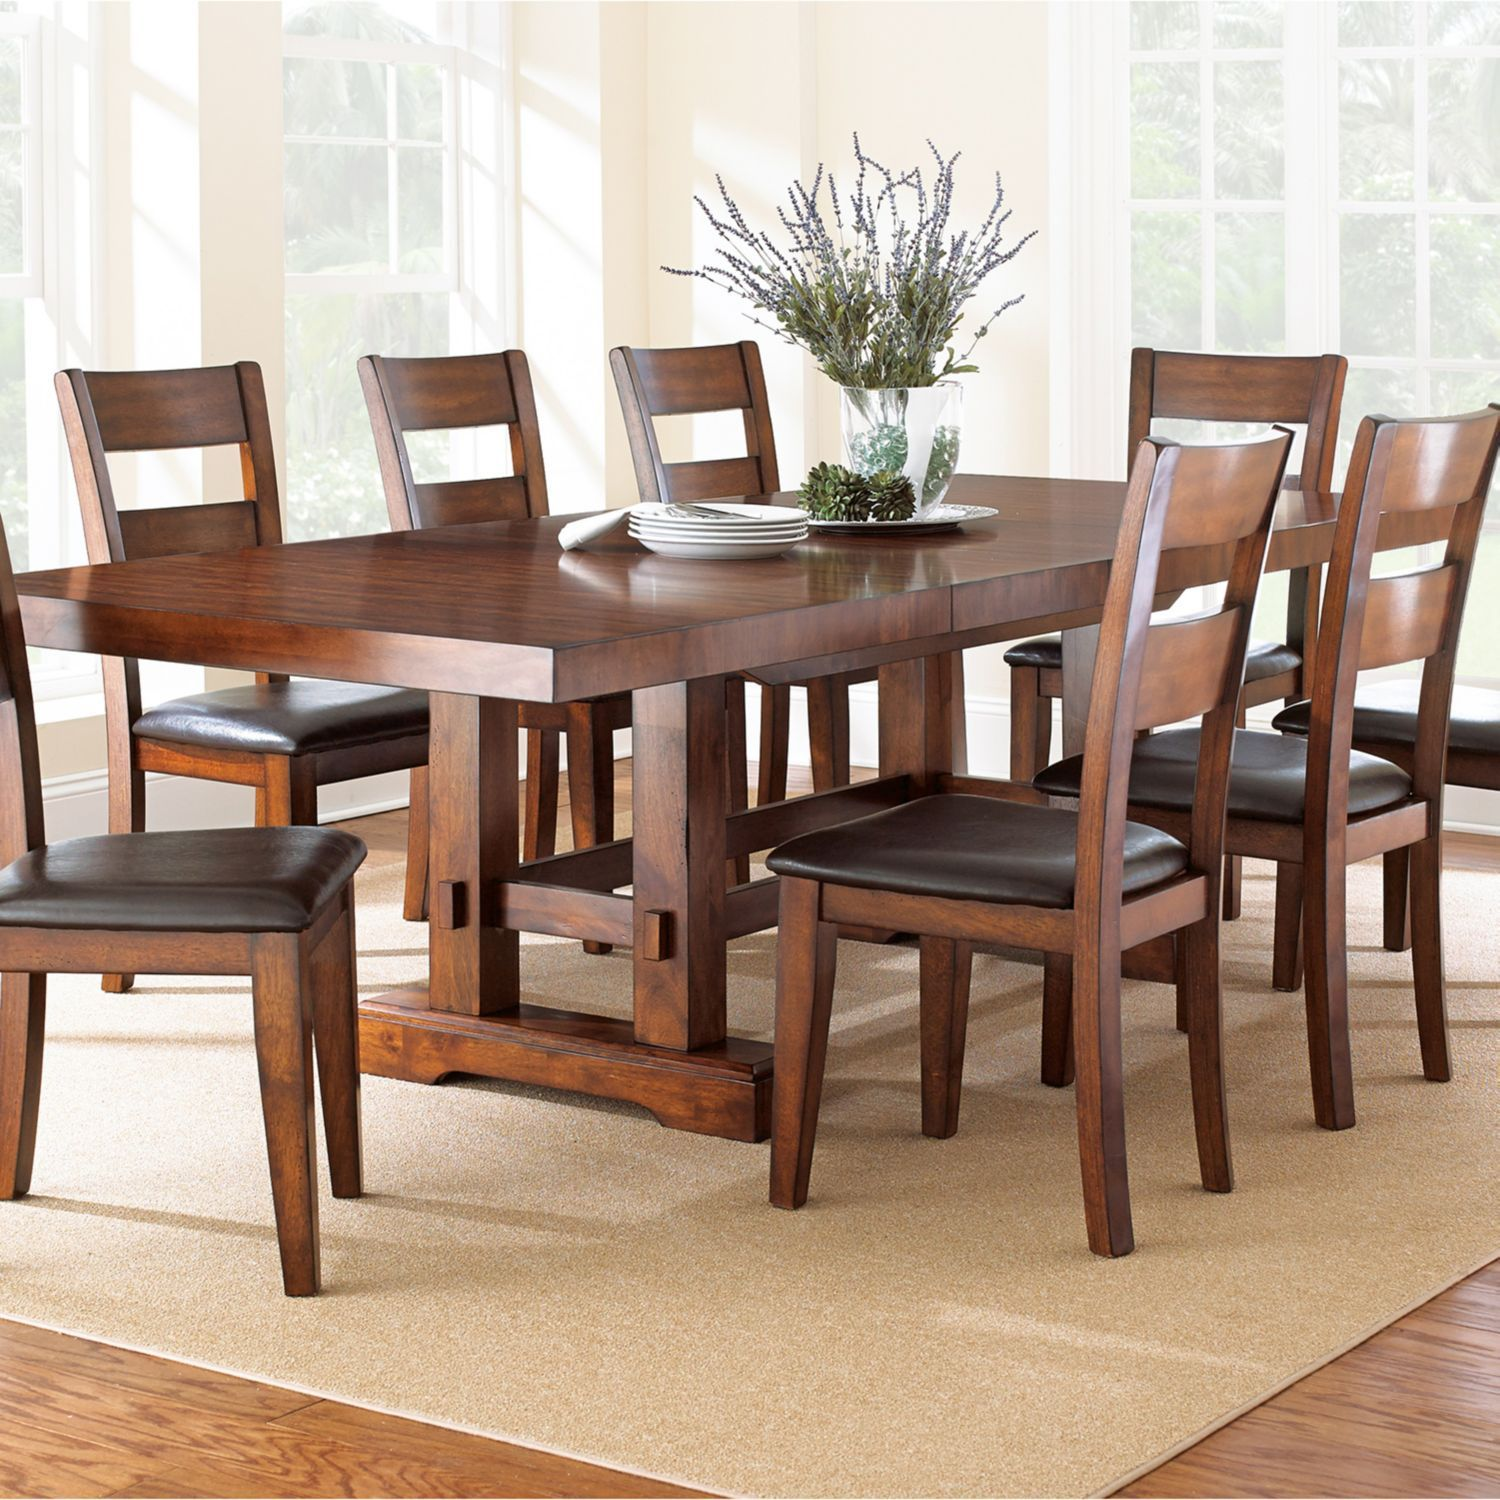 Room Ziva Dining 9 Piece Set